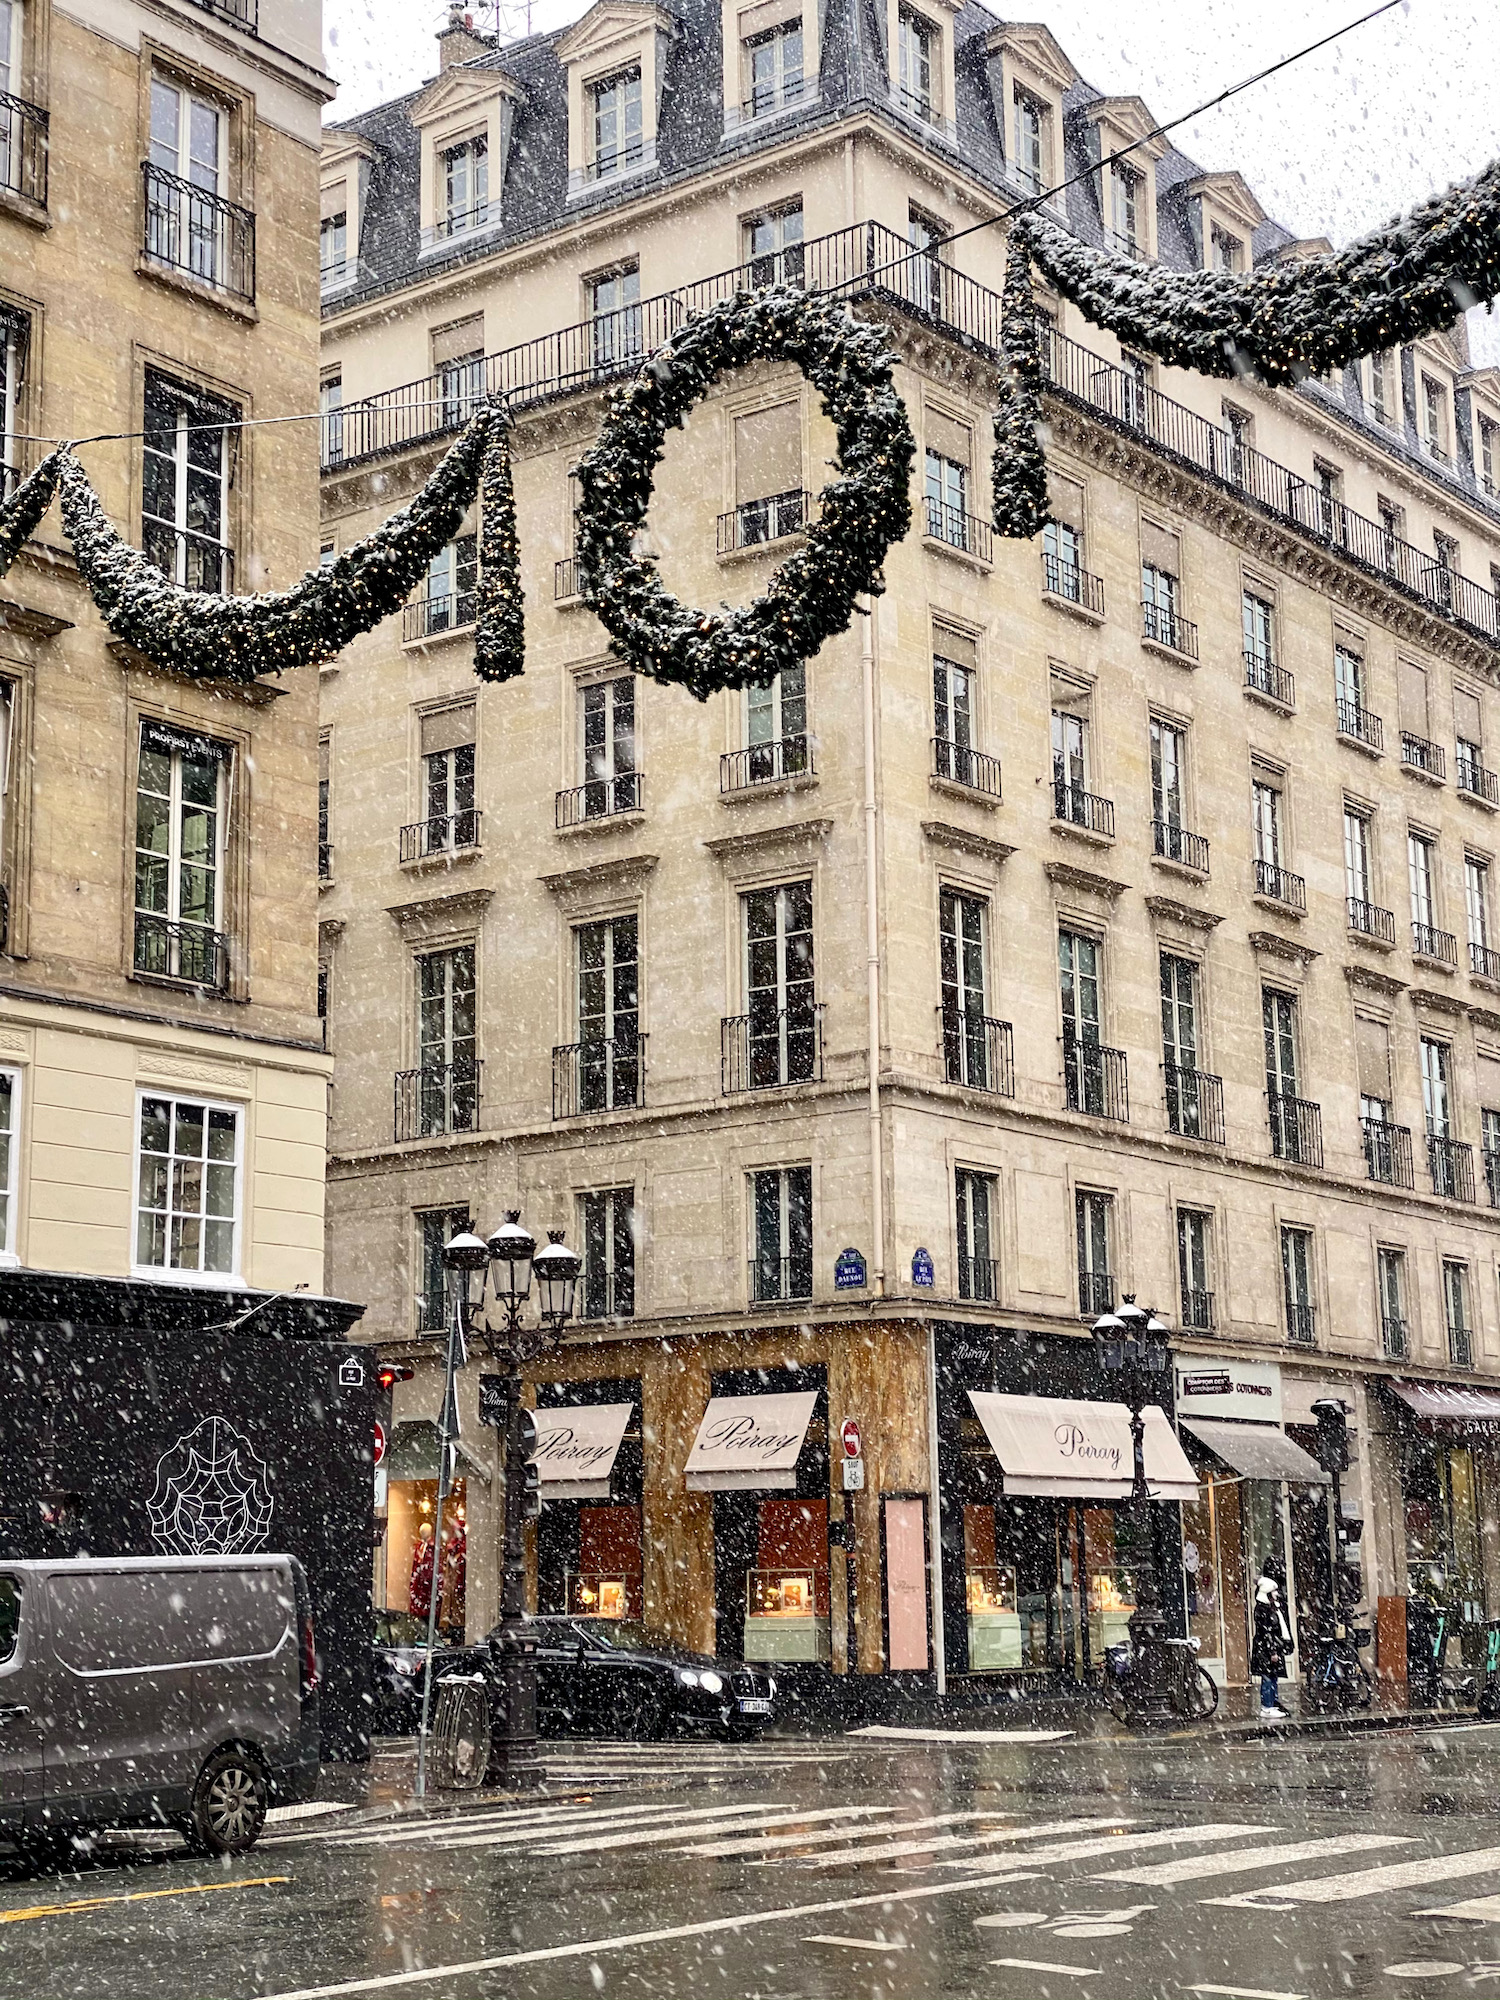 snowy christmas decorations in paris